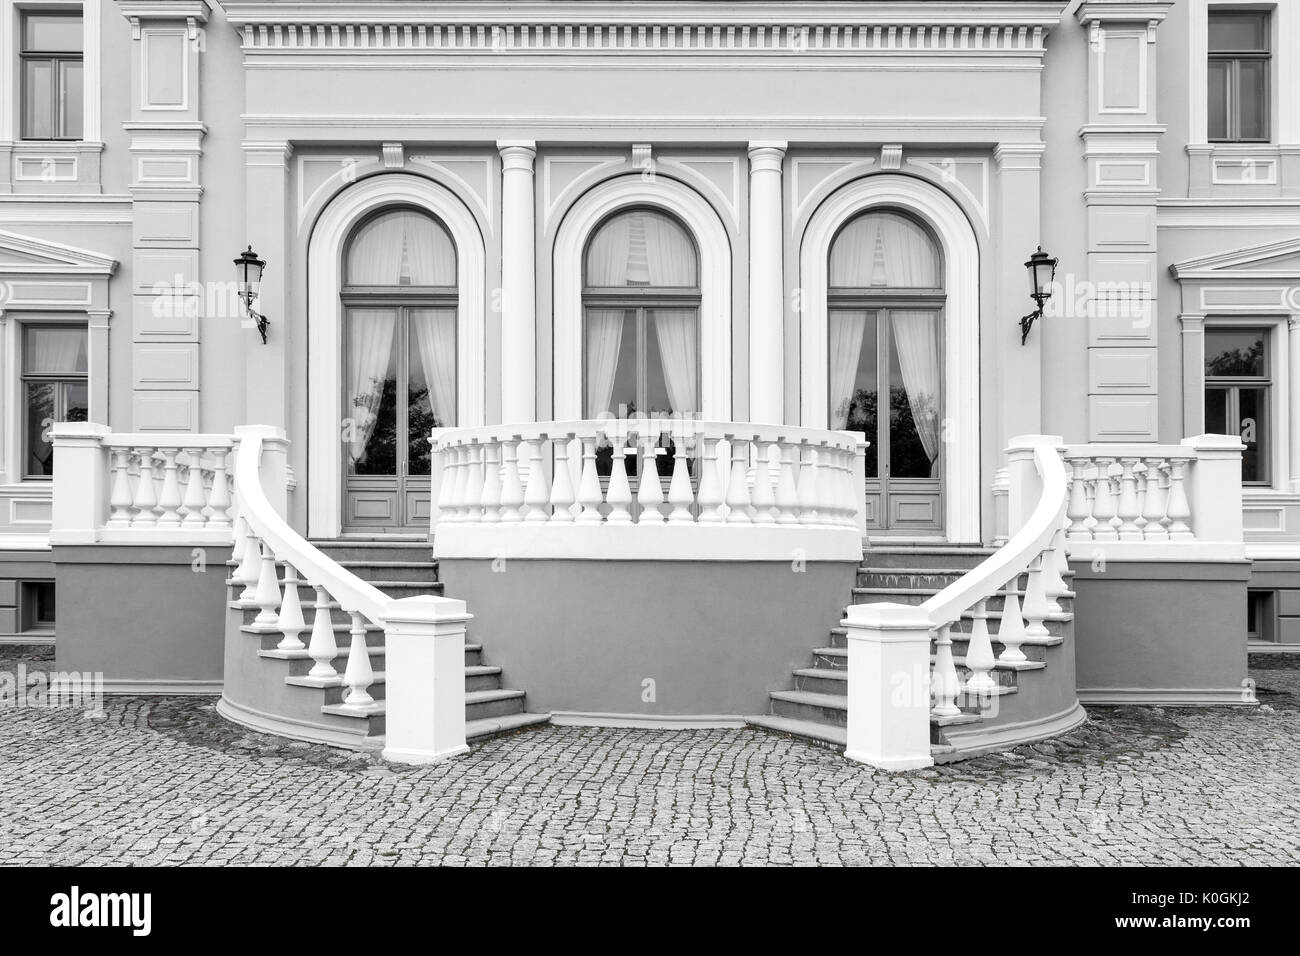 Exterior detail of an old neo renaissance building with stairs and windows, black and white picture - Stock Image